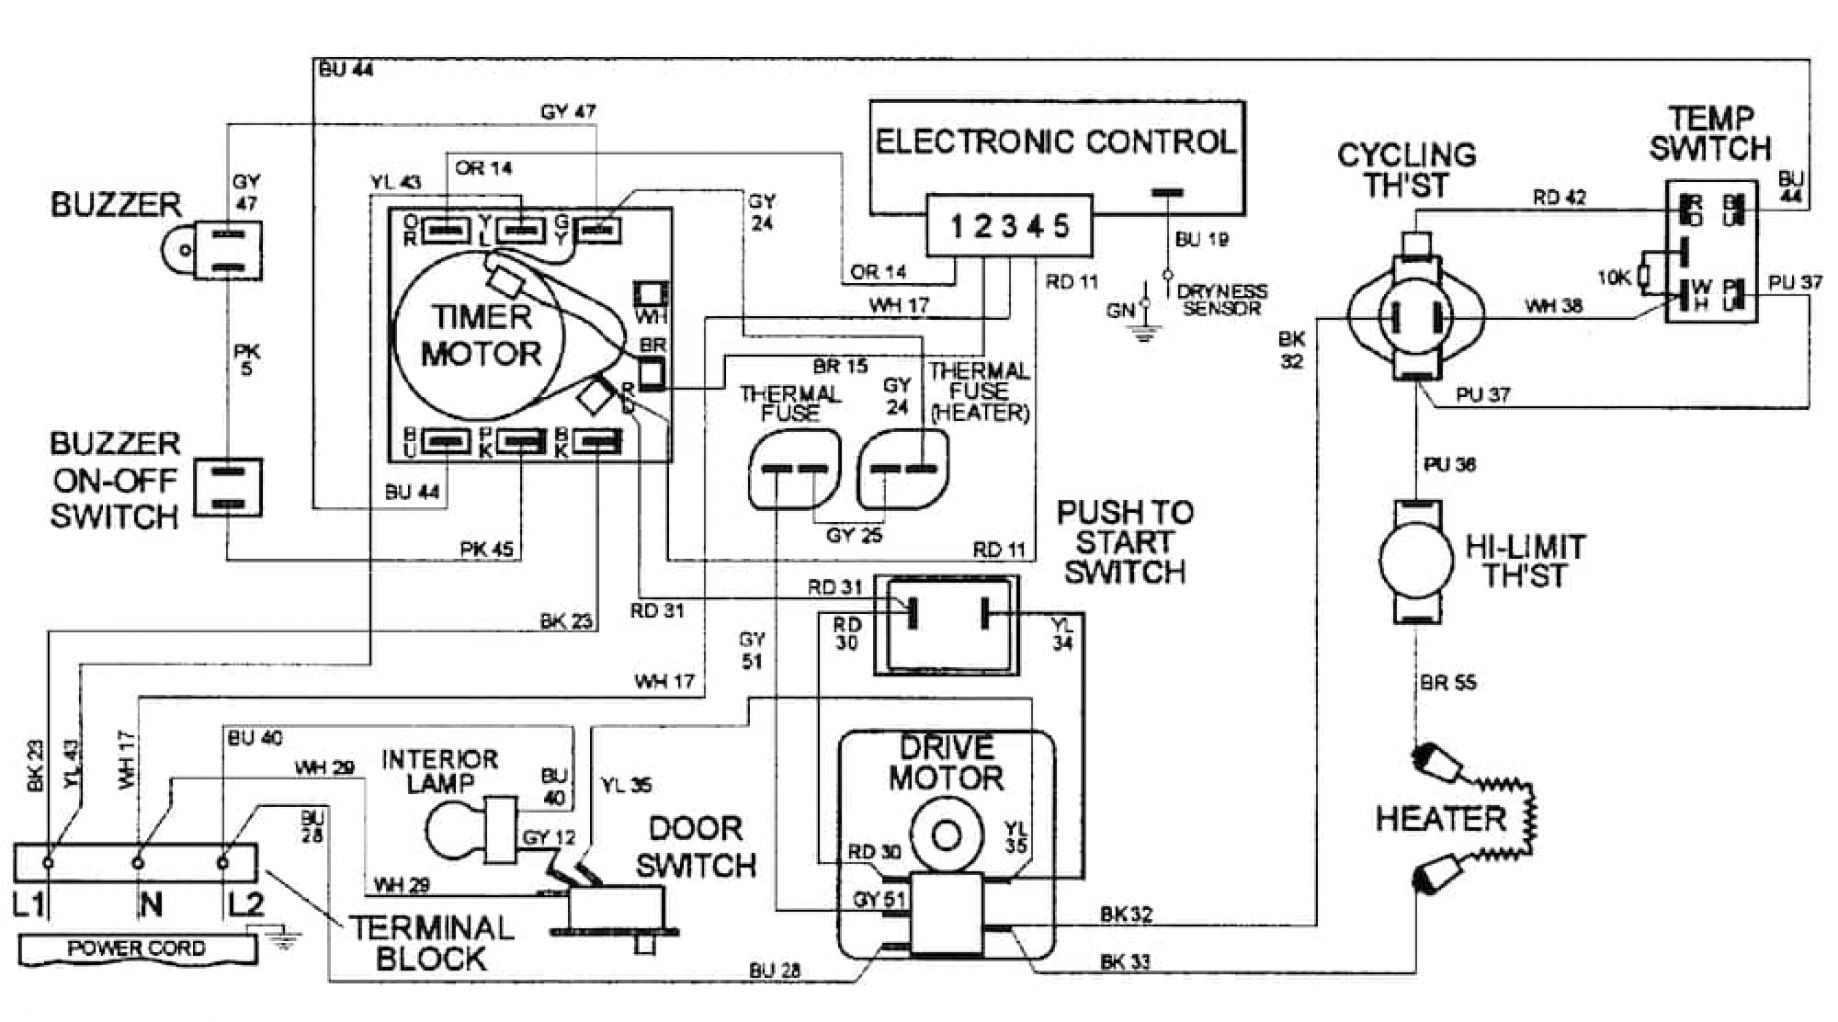 3 Wire Diagram Whirlpool Dryer - 1992 Lexus Fuse Box Diagram for Wiring  Diagram SchematicsWiring Diagram Schematics